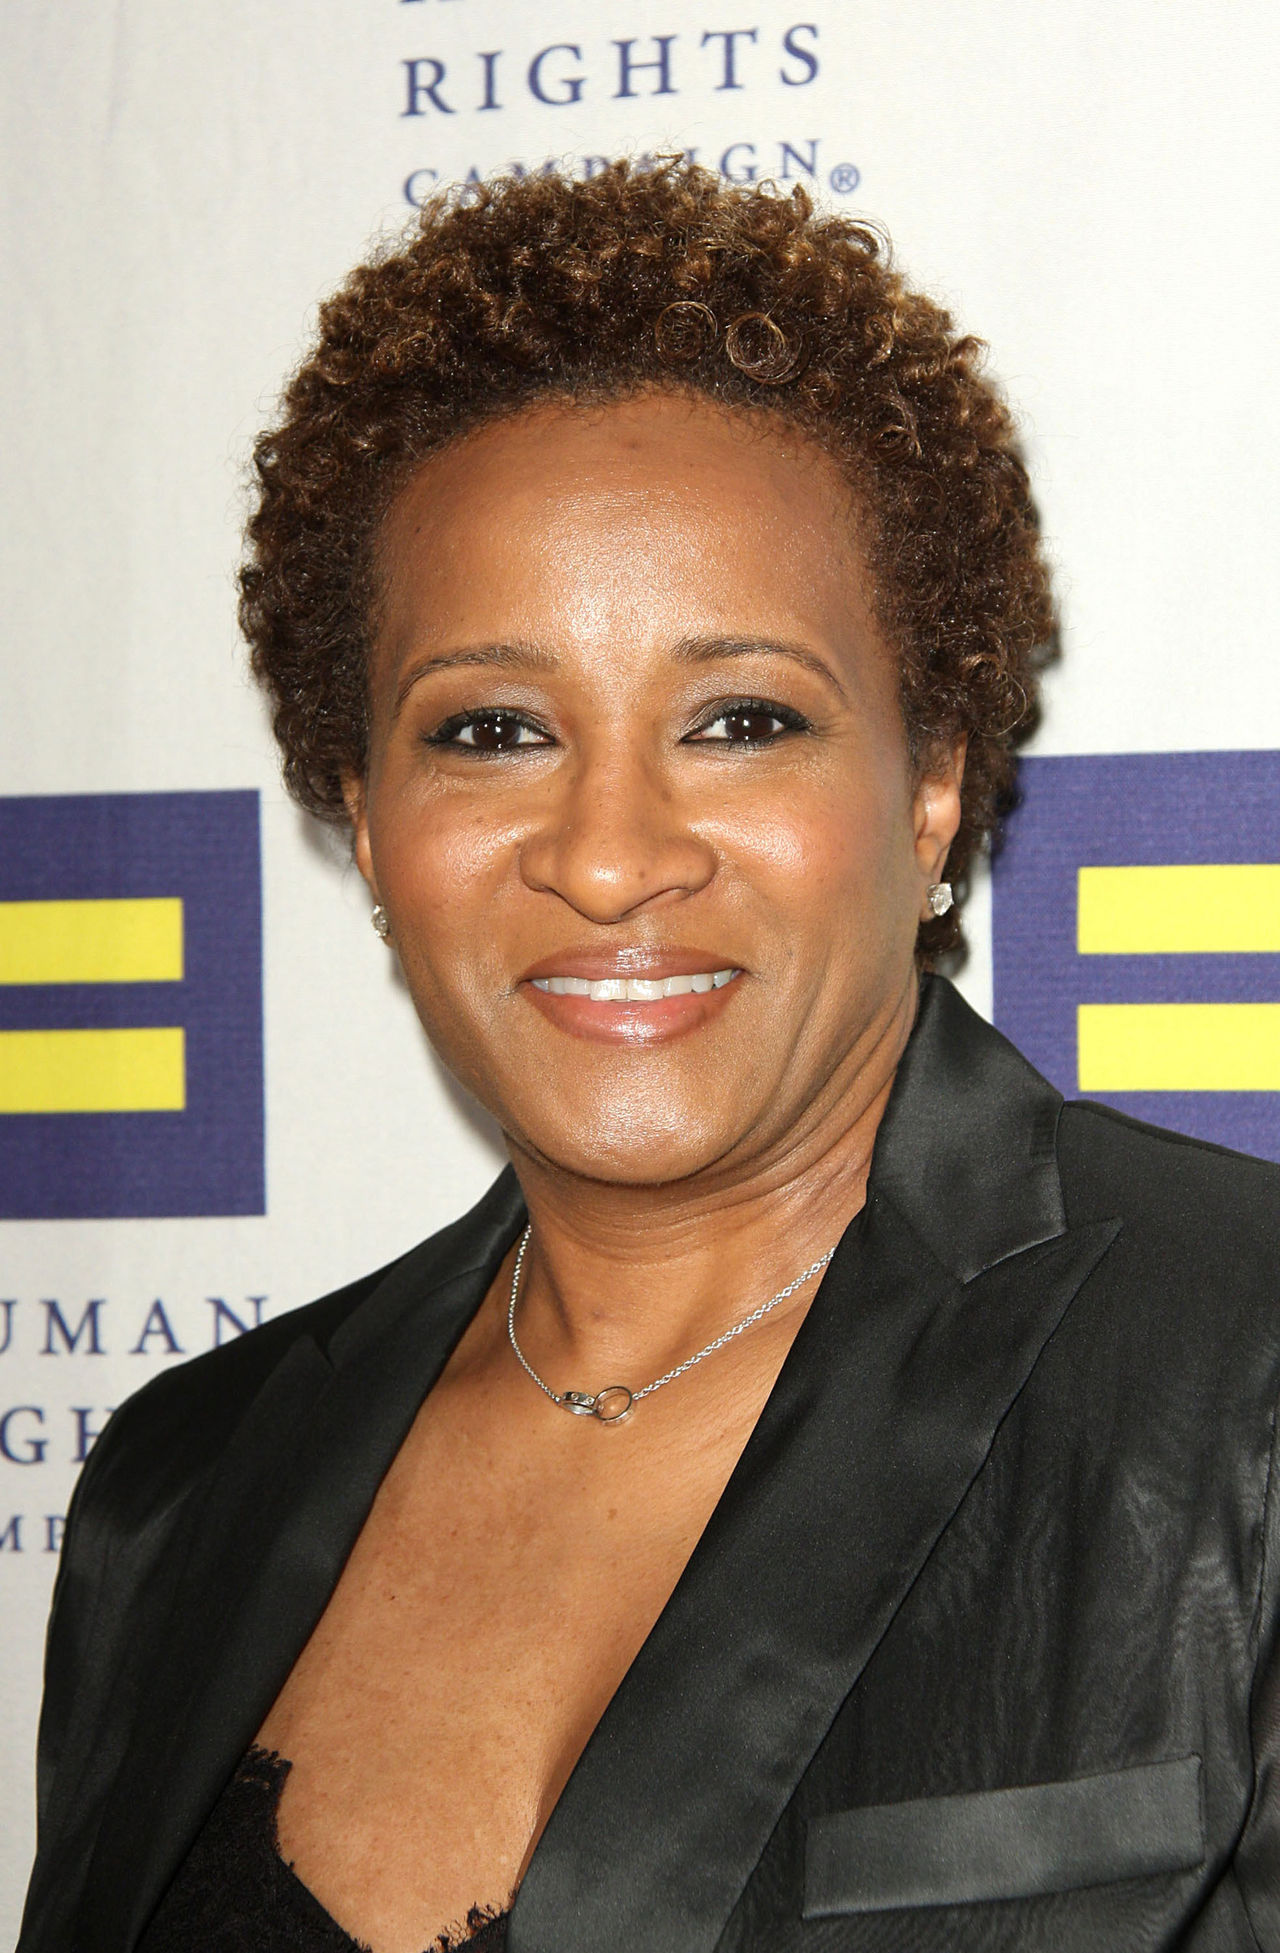 Emmy Award winning writer, also a comedienne and actress. Sykes hosted her own talk-show on Fox channel. She had been married to a man named Dave Hill for 7 years (1991-1998), however in 2008 Sykes opened up on her orientation during Las Vegas rally against ban of new marriages of same-sex couples in California.